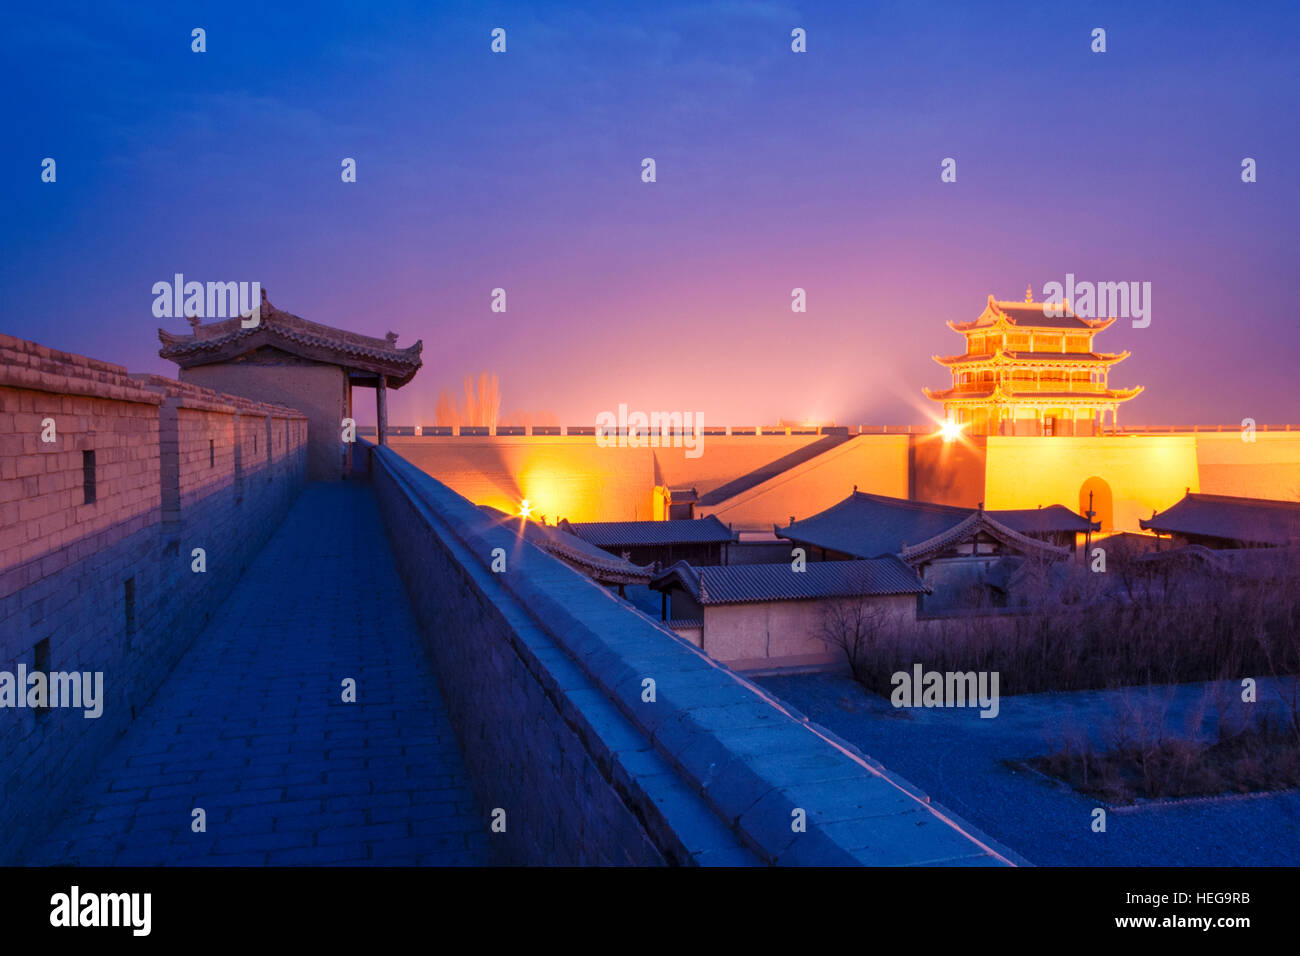 Jiayuguan fort illuminated at twilight at the western boundary of the Great Wall of China. The pass was a key waypoint - Stock Image